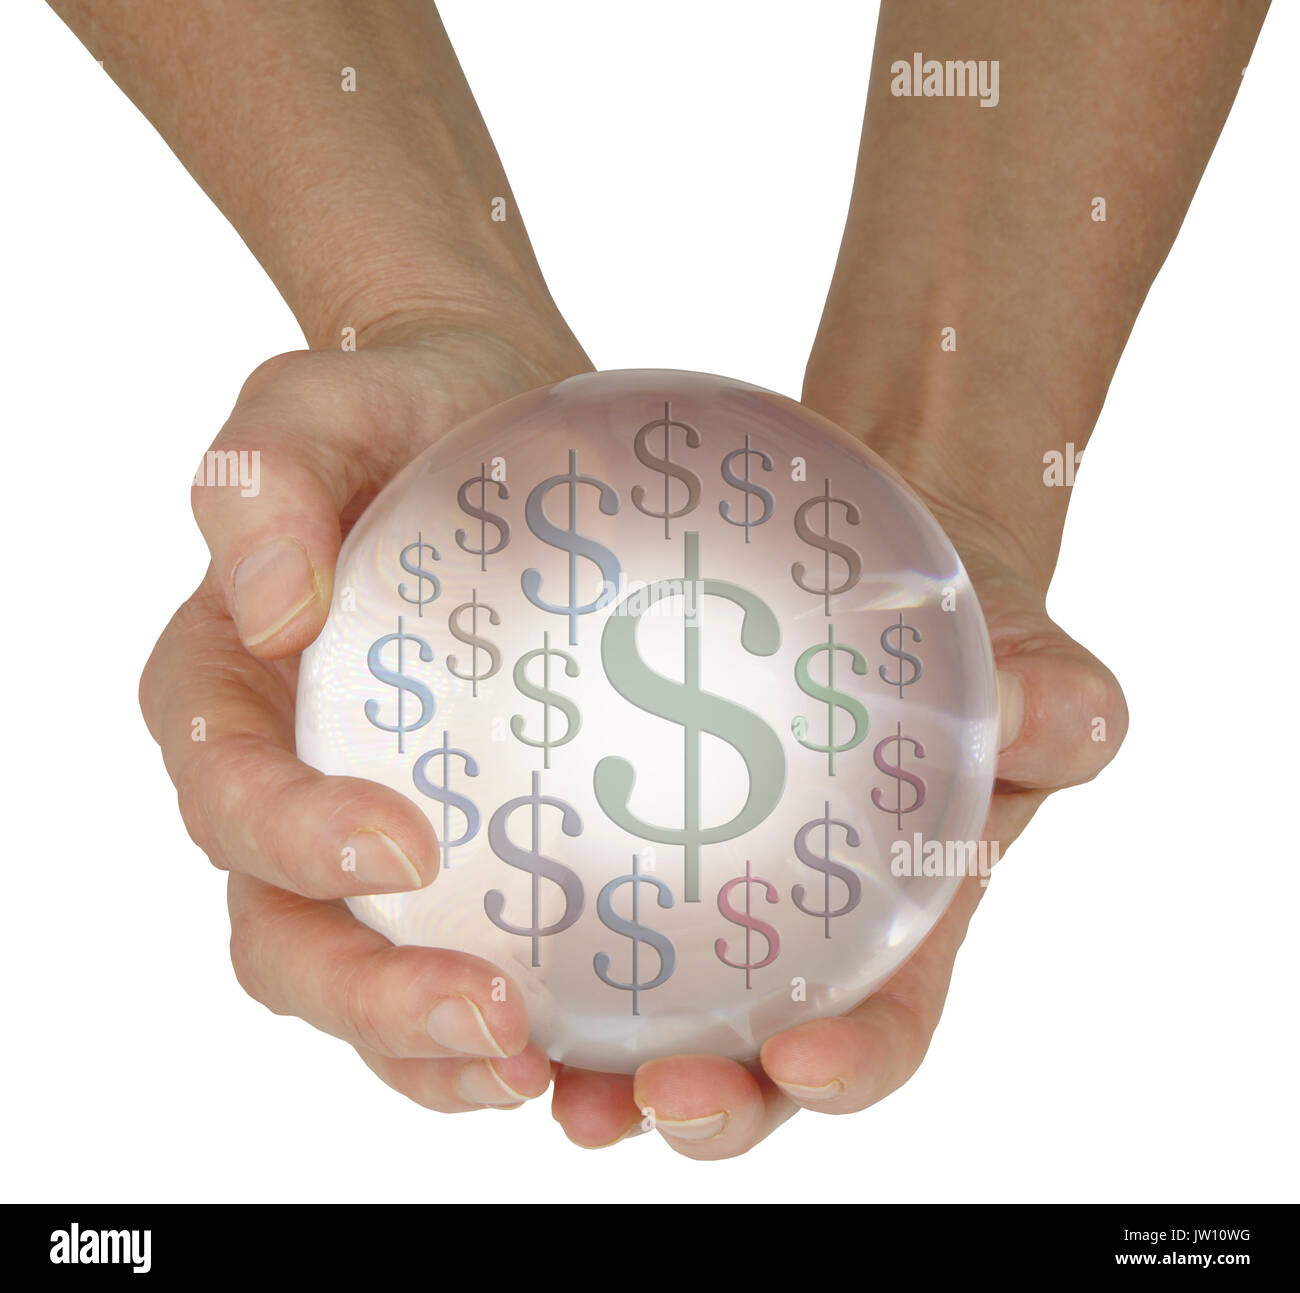 Predicting money in the future - female hands holding large crystal ball showing differently sized dollar $ signs isolated on a white background - Stock Image